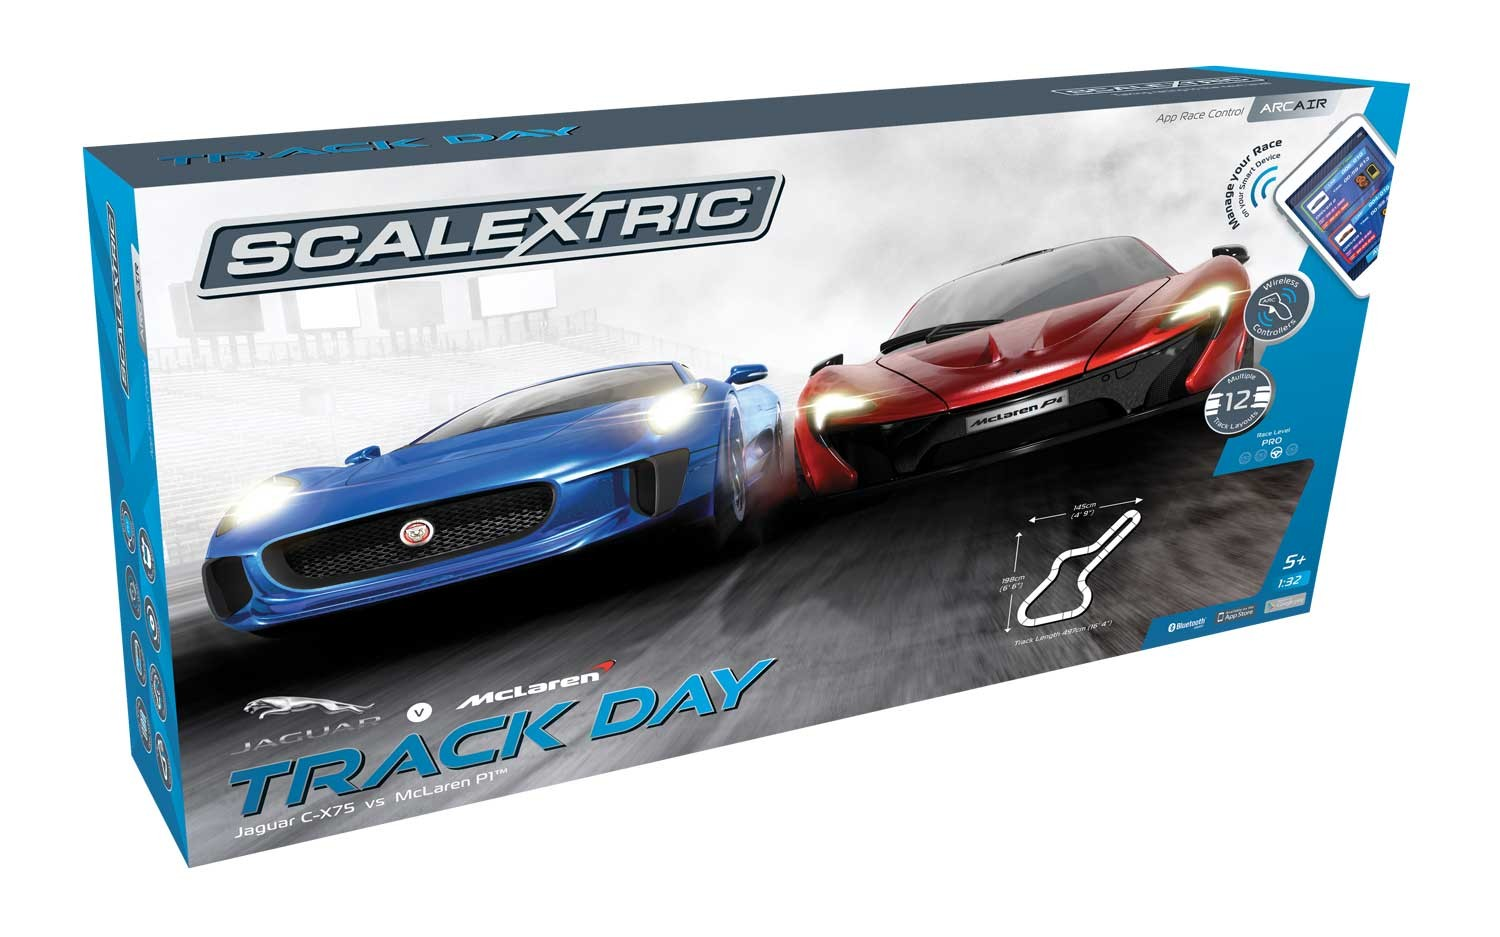 ARC AIR Track Day 1/32 Race Set